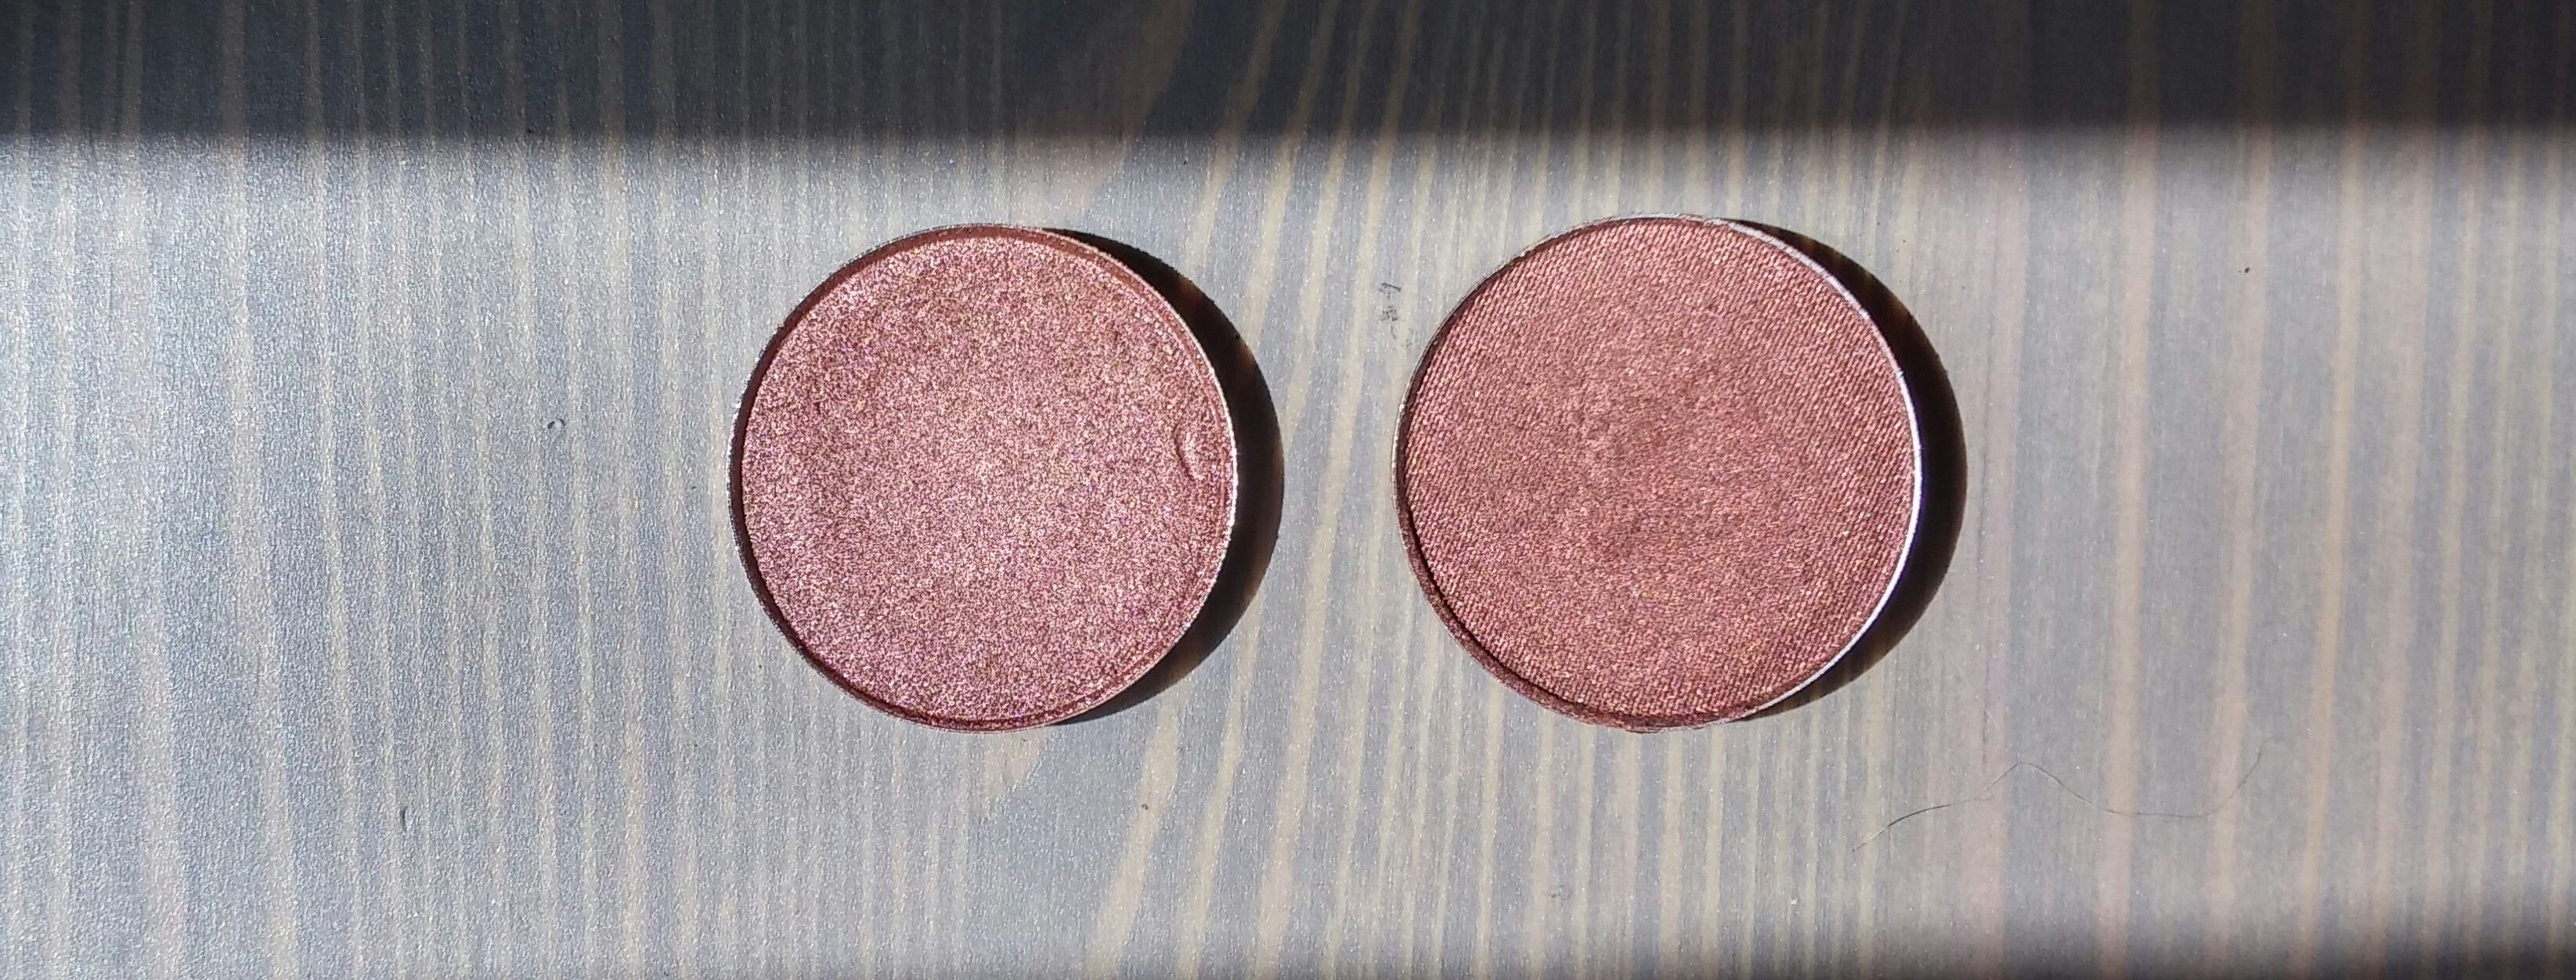 Dupe Mac Antiqued Vs Es74 Burlesque Morphe Brushes Style Mac